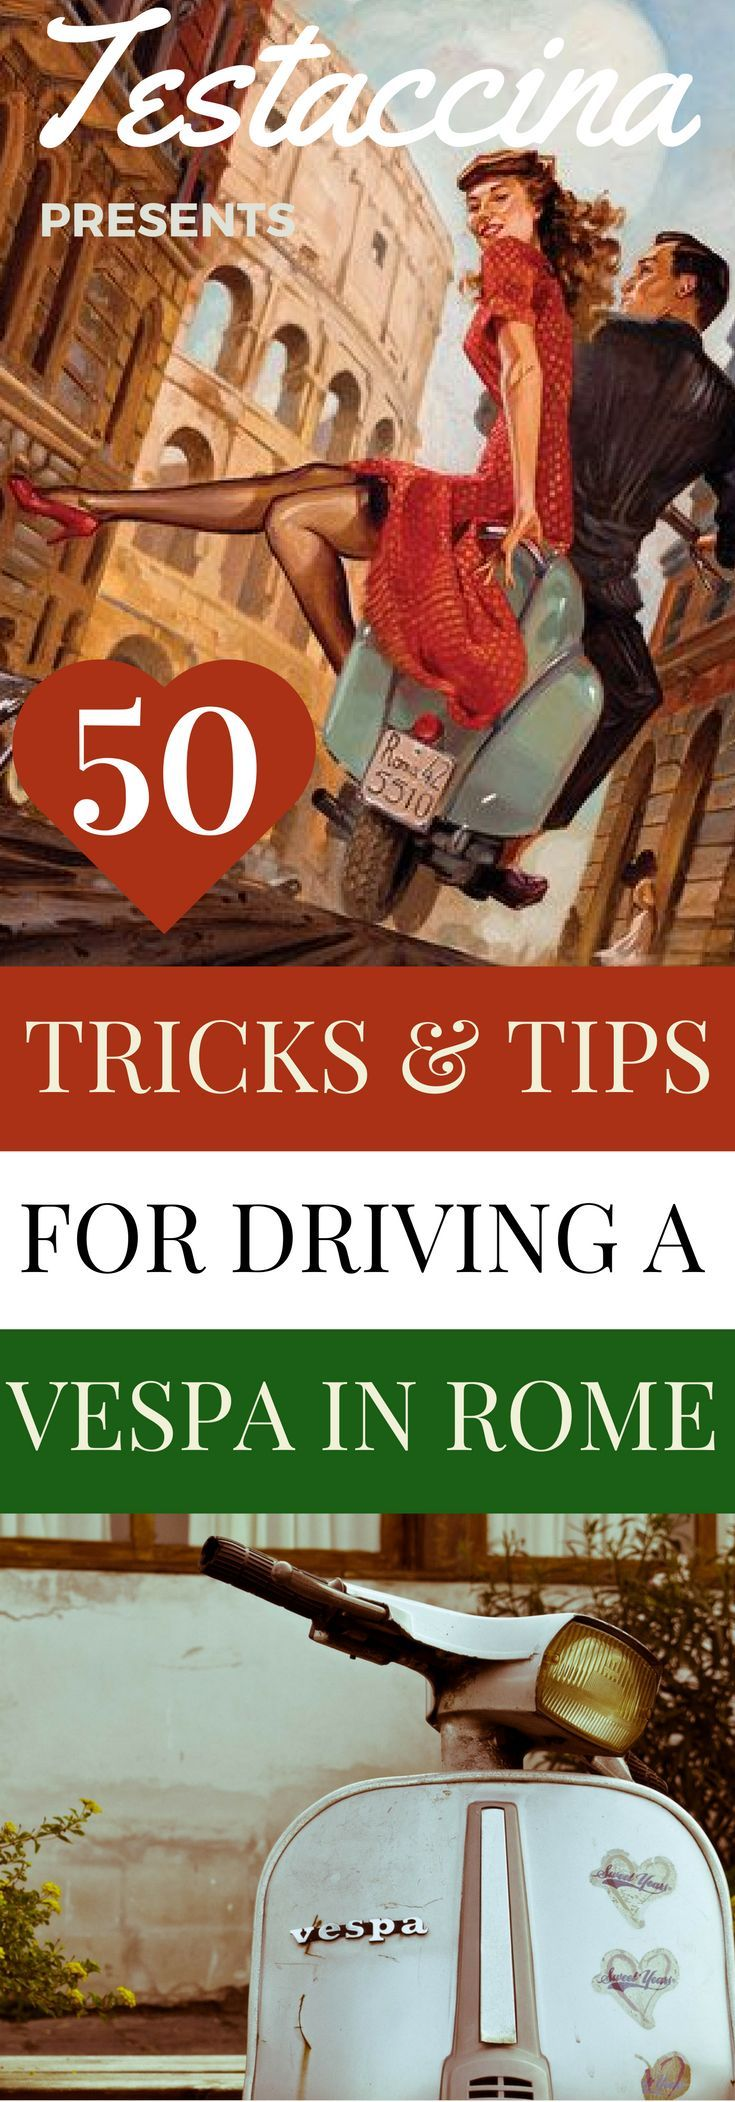 Ever wanted to hire a scooter in Rome? Read this easy guide to driving a Vespa through the Eternal City with some streetwise tips for handling a motorino in Italy.